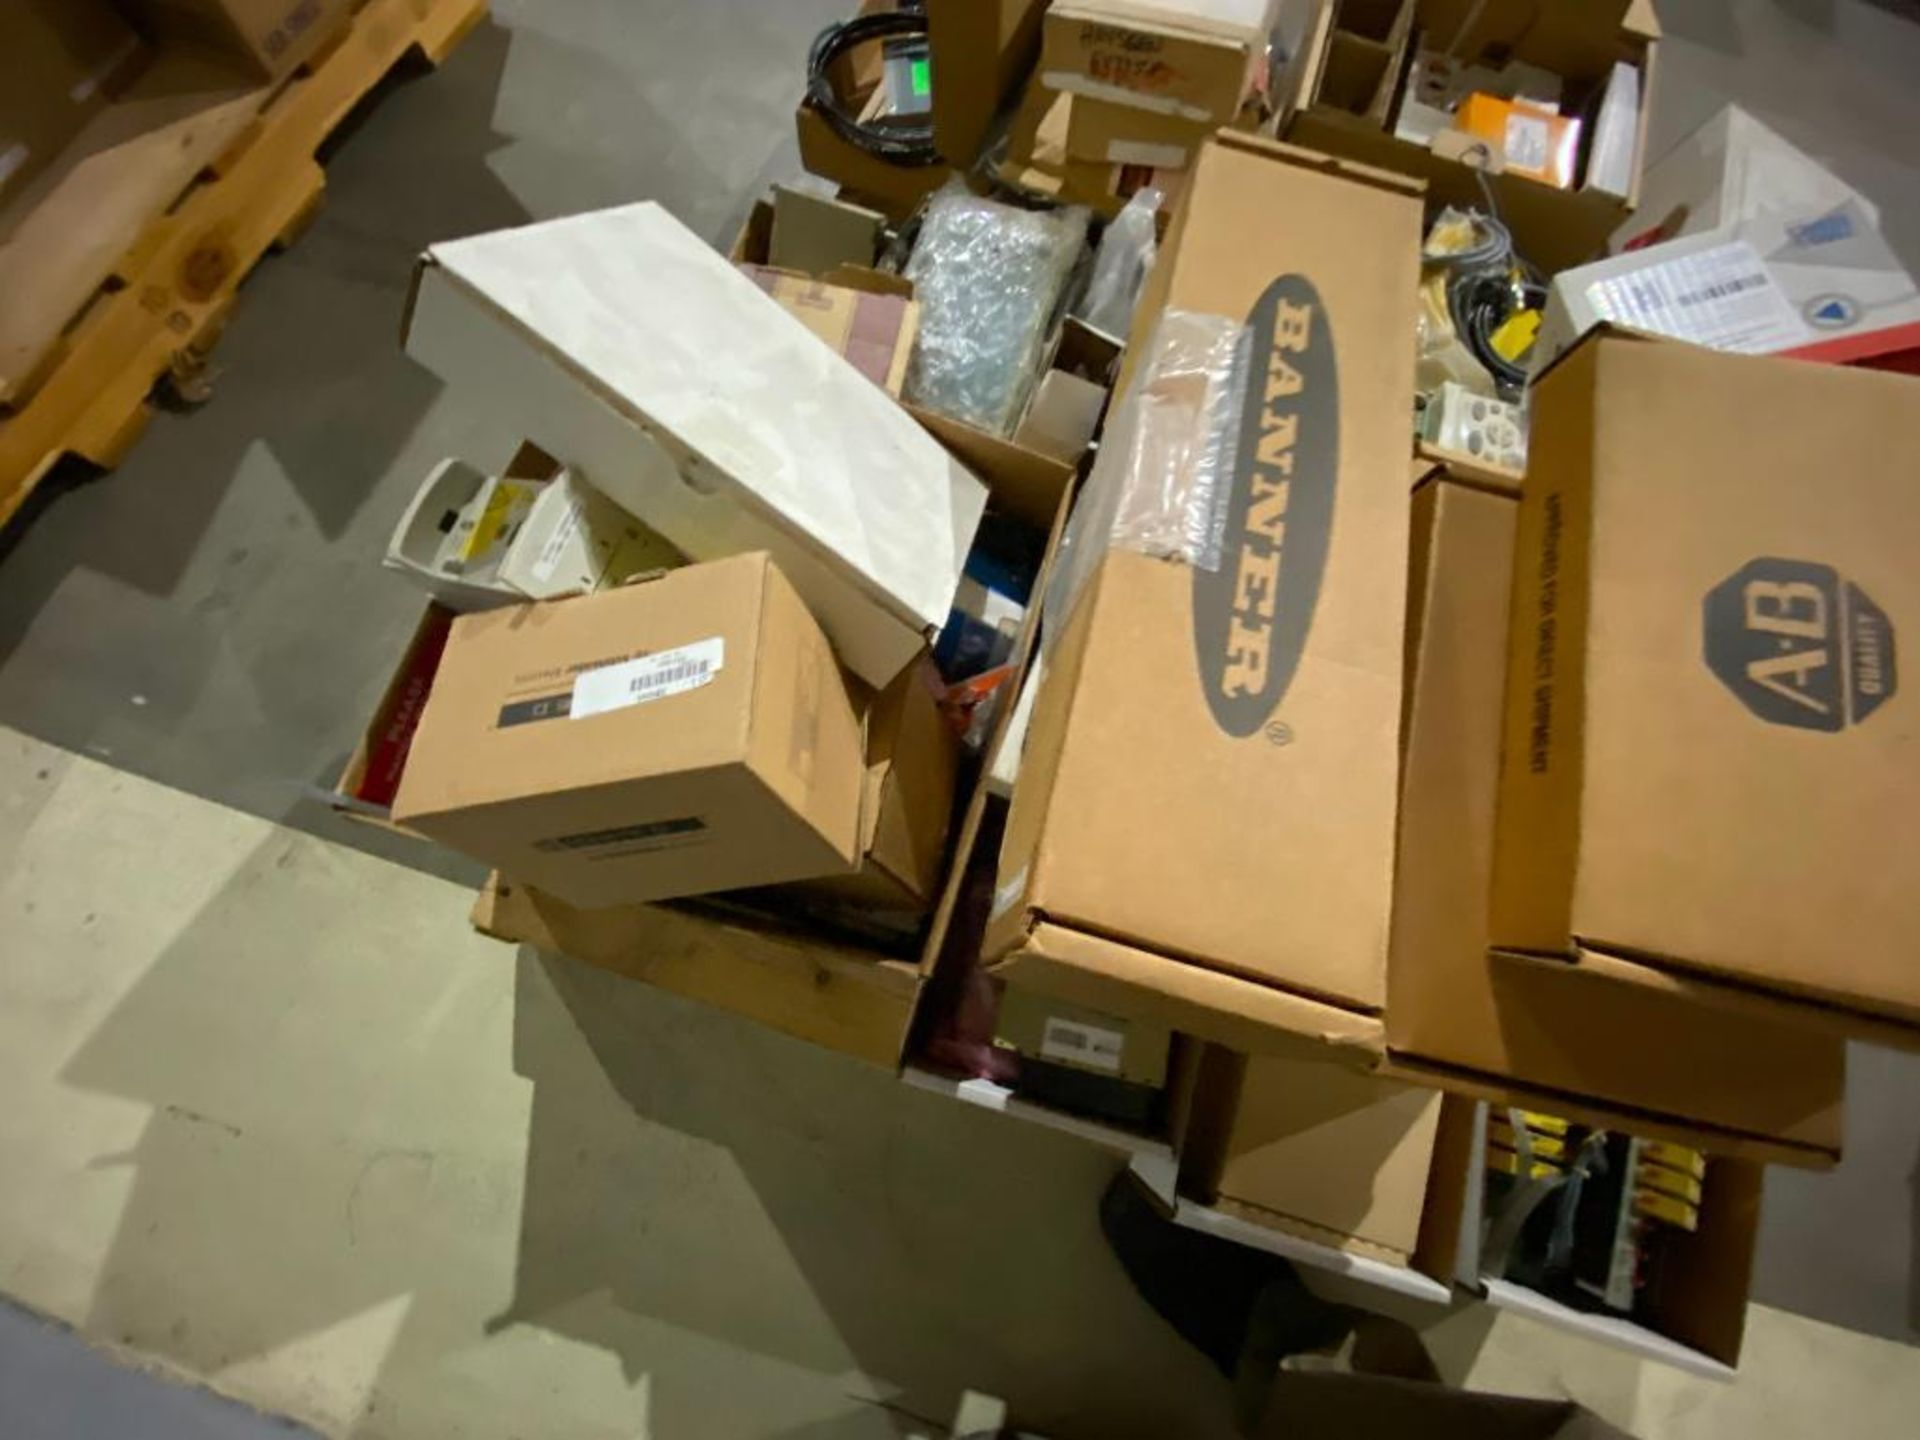 pallet of ABB parts, controllers, cabinets, and control boards - Image 6 of 8